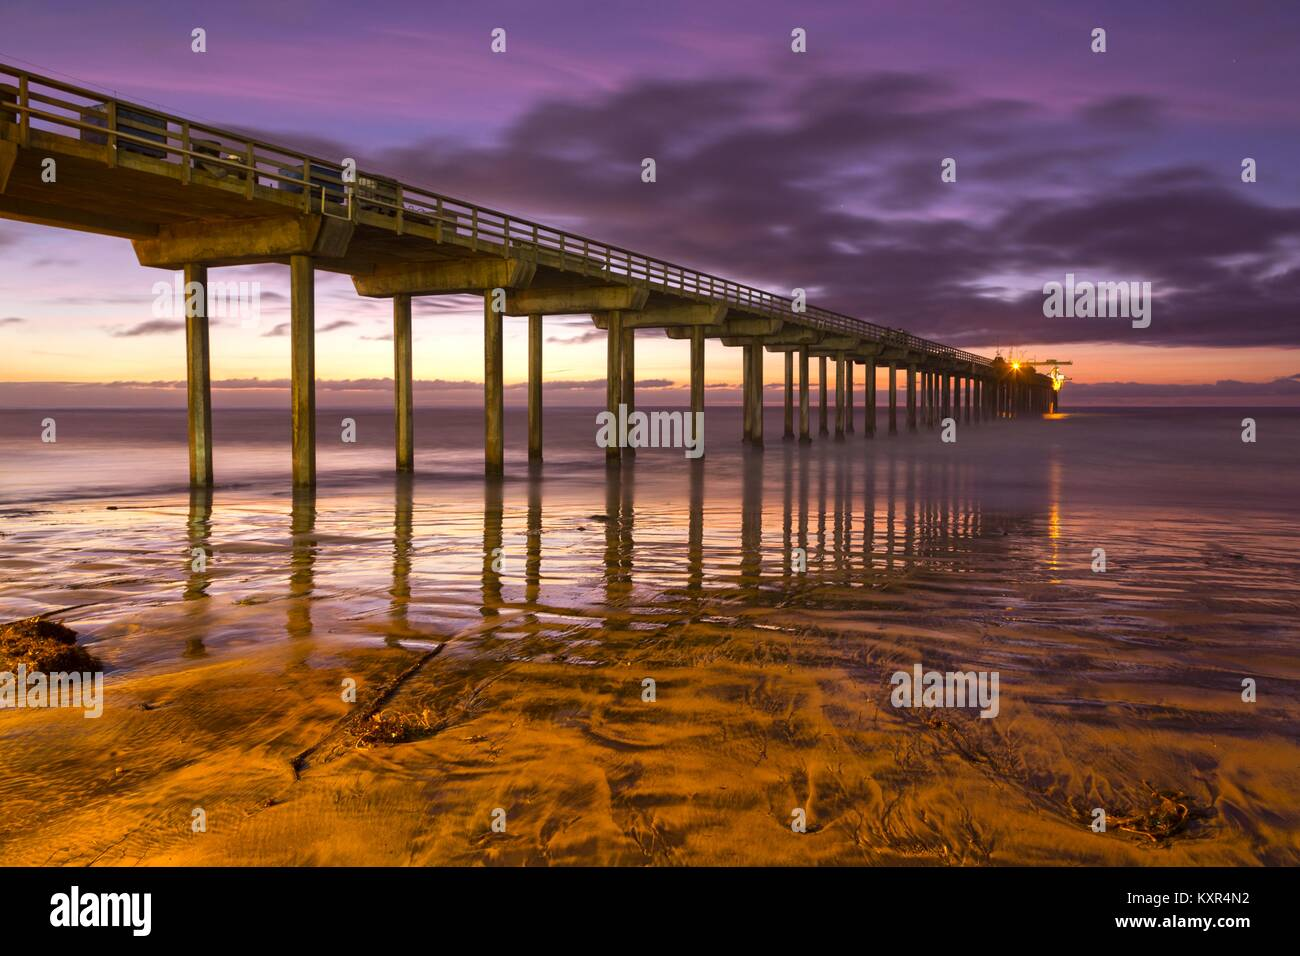 Scripps Pier Sunset Colors and La Jolla Shores Beach with distant Pacific Ocean on the Horizon north of San Diego - Stock Image